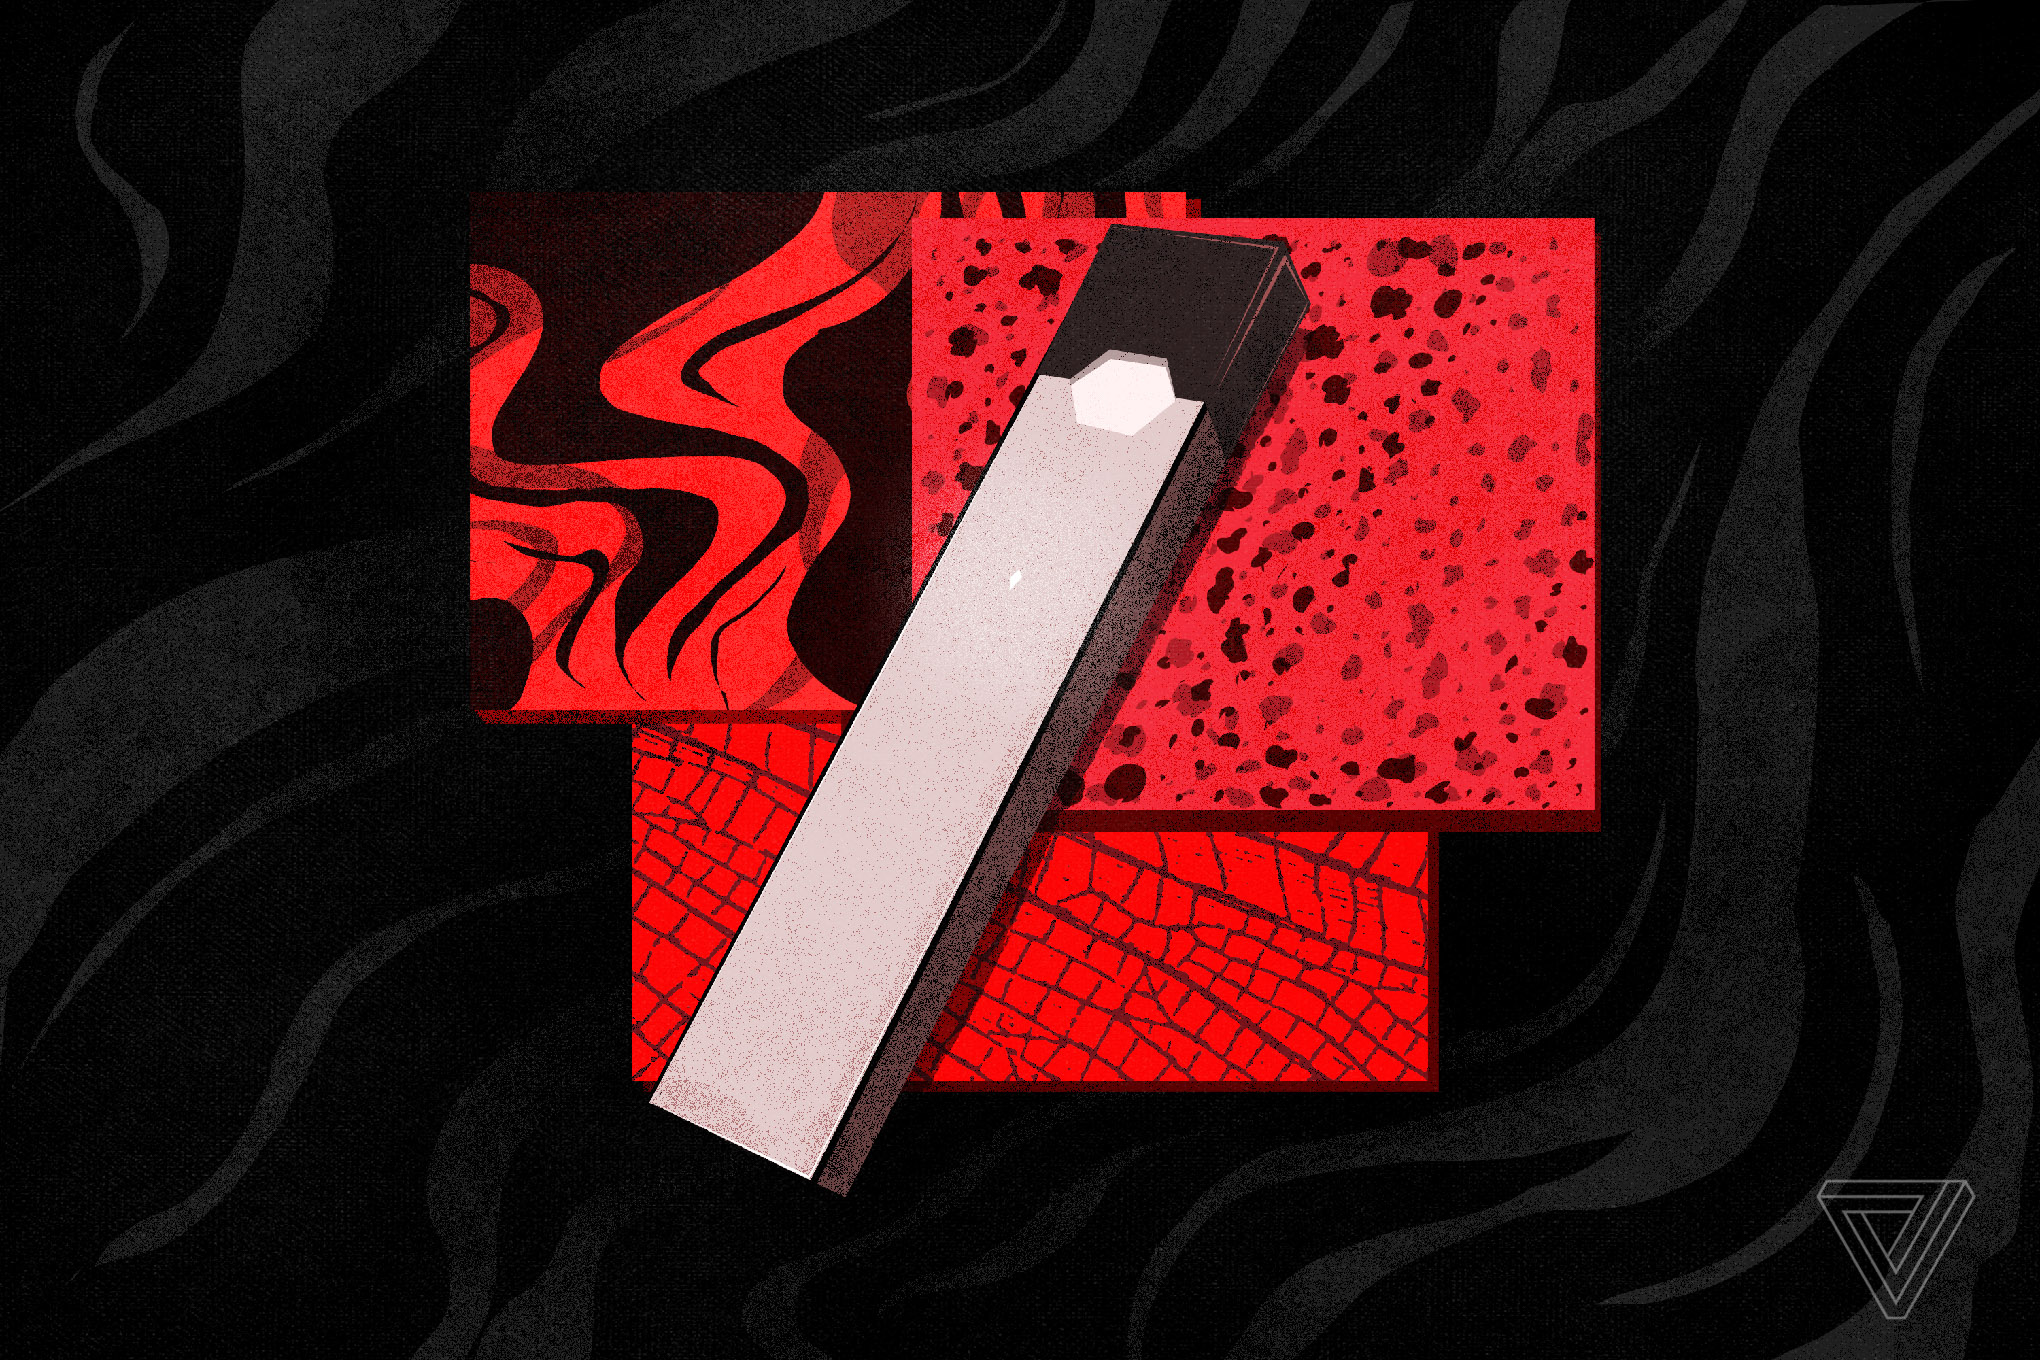 Best E Cigarette 2020 San Francisco is set to ban Juul and other e cigarette sales in